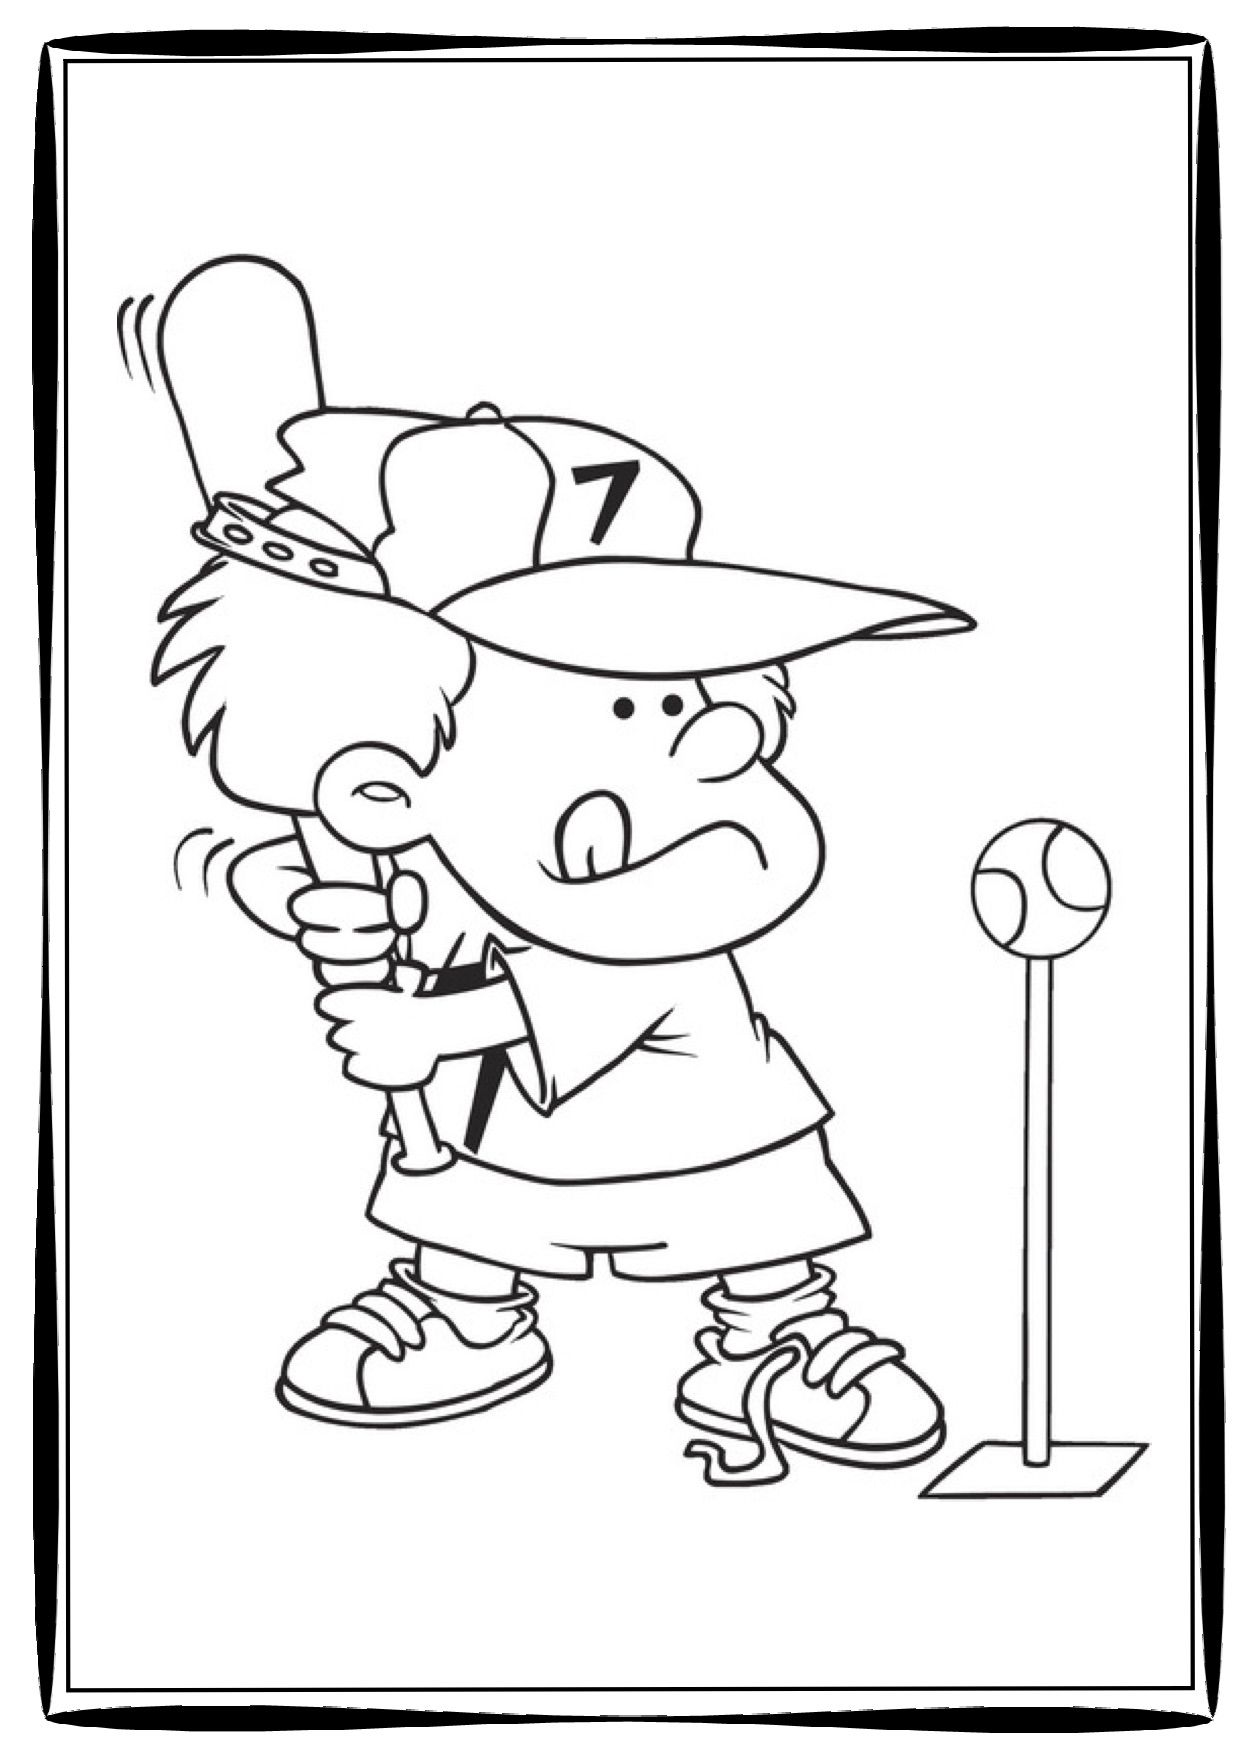 Babe Ruth Coloring Page Coloring